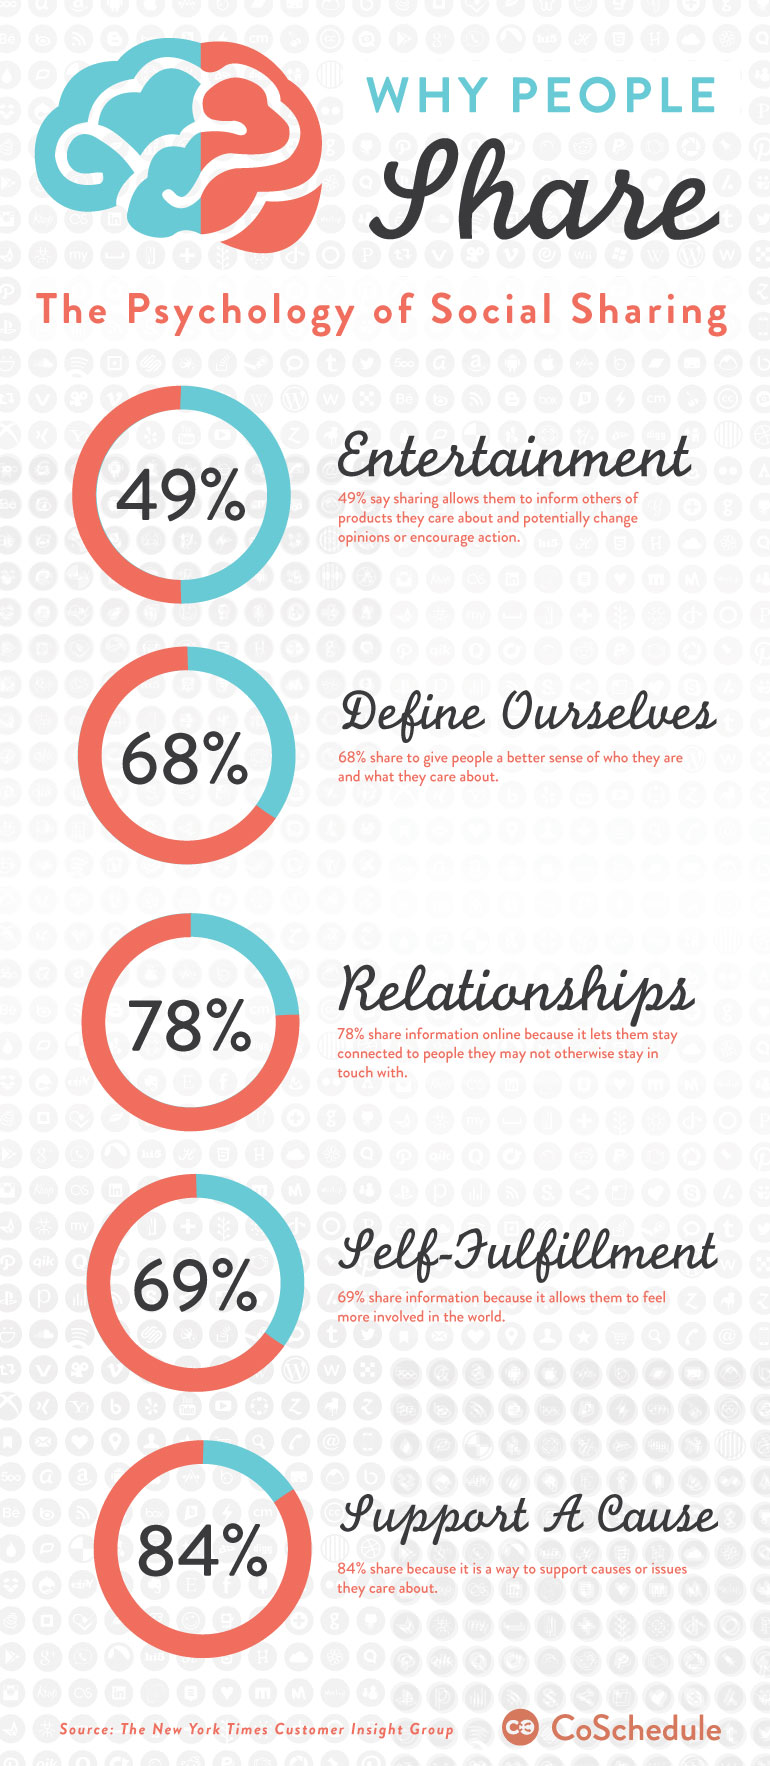 Infographic by CoSchedule: http://coschedule.com/blog/why-people-share/